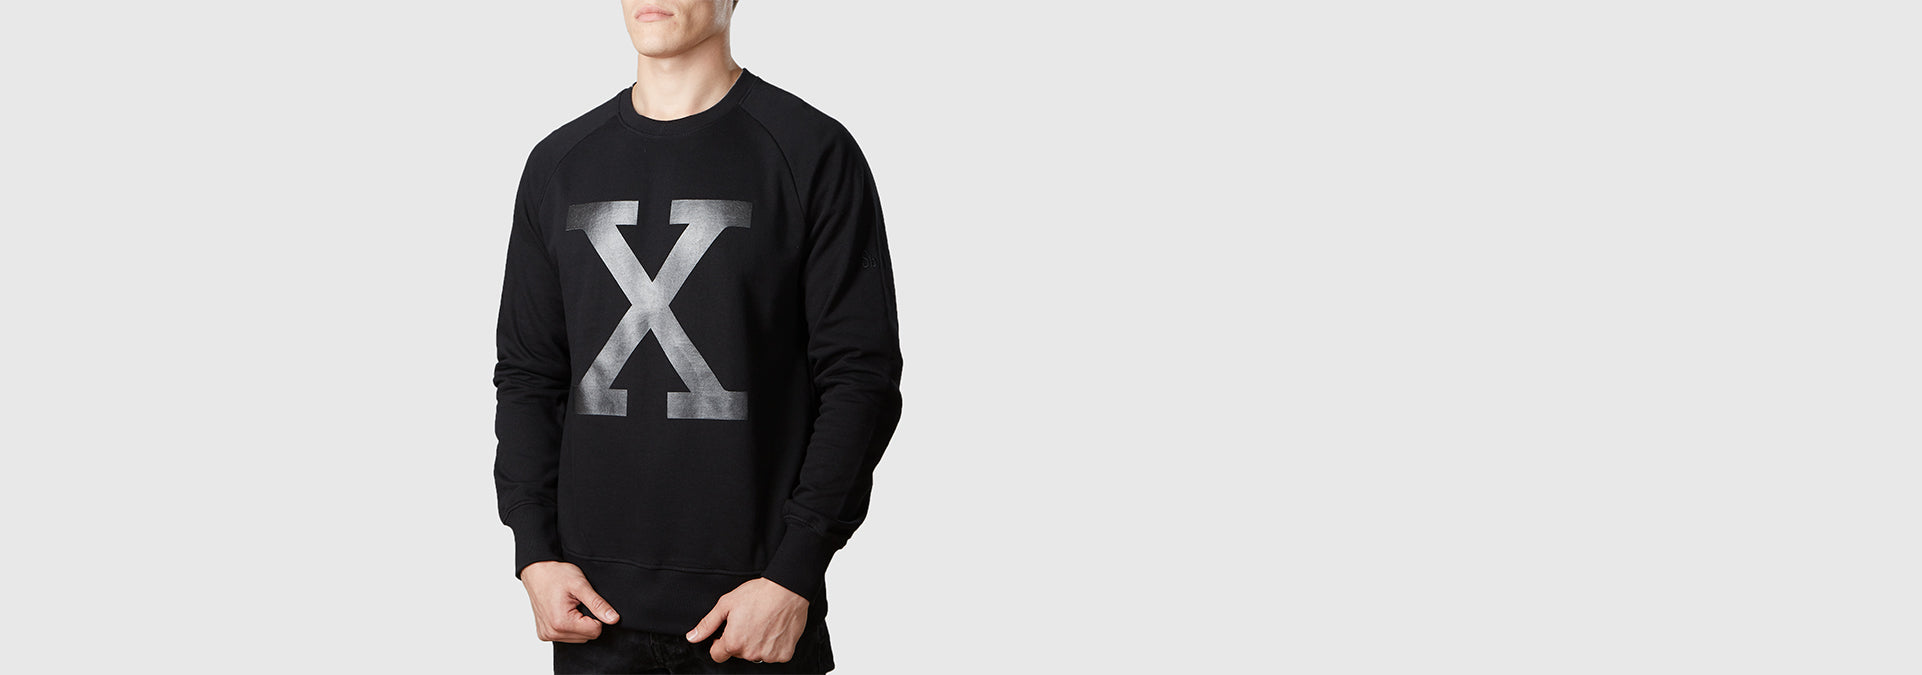 X Sweat Black